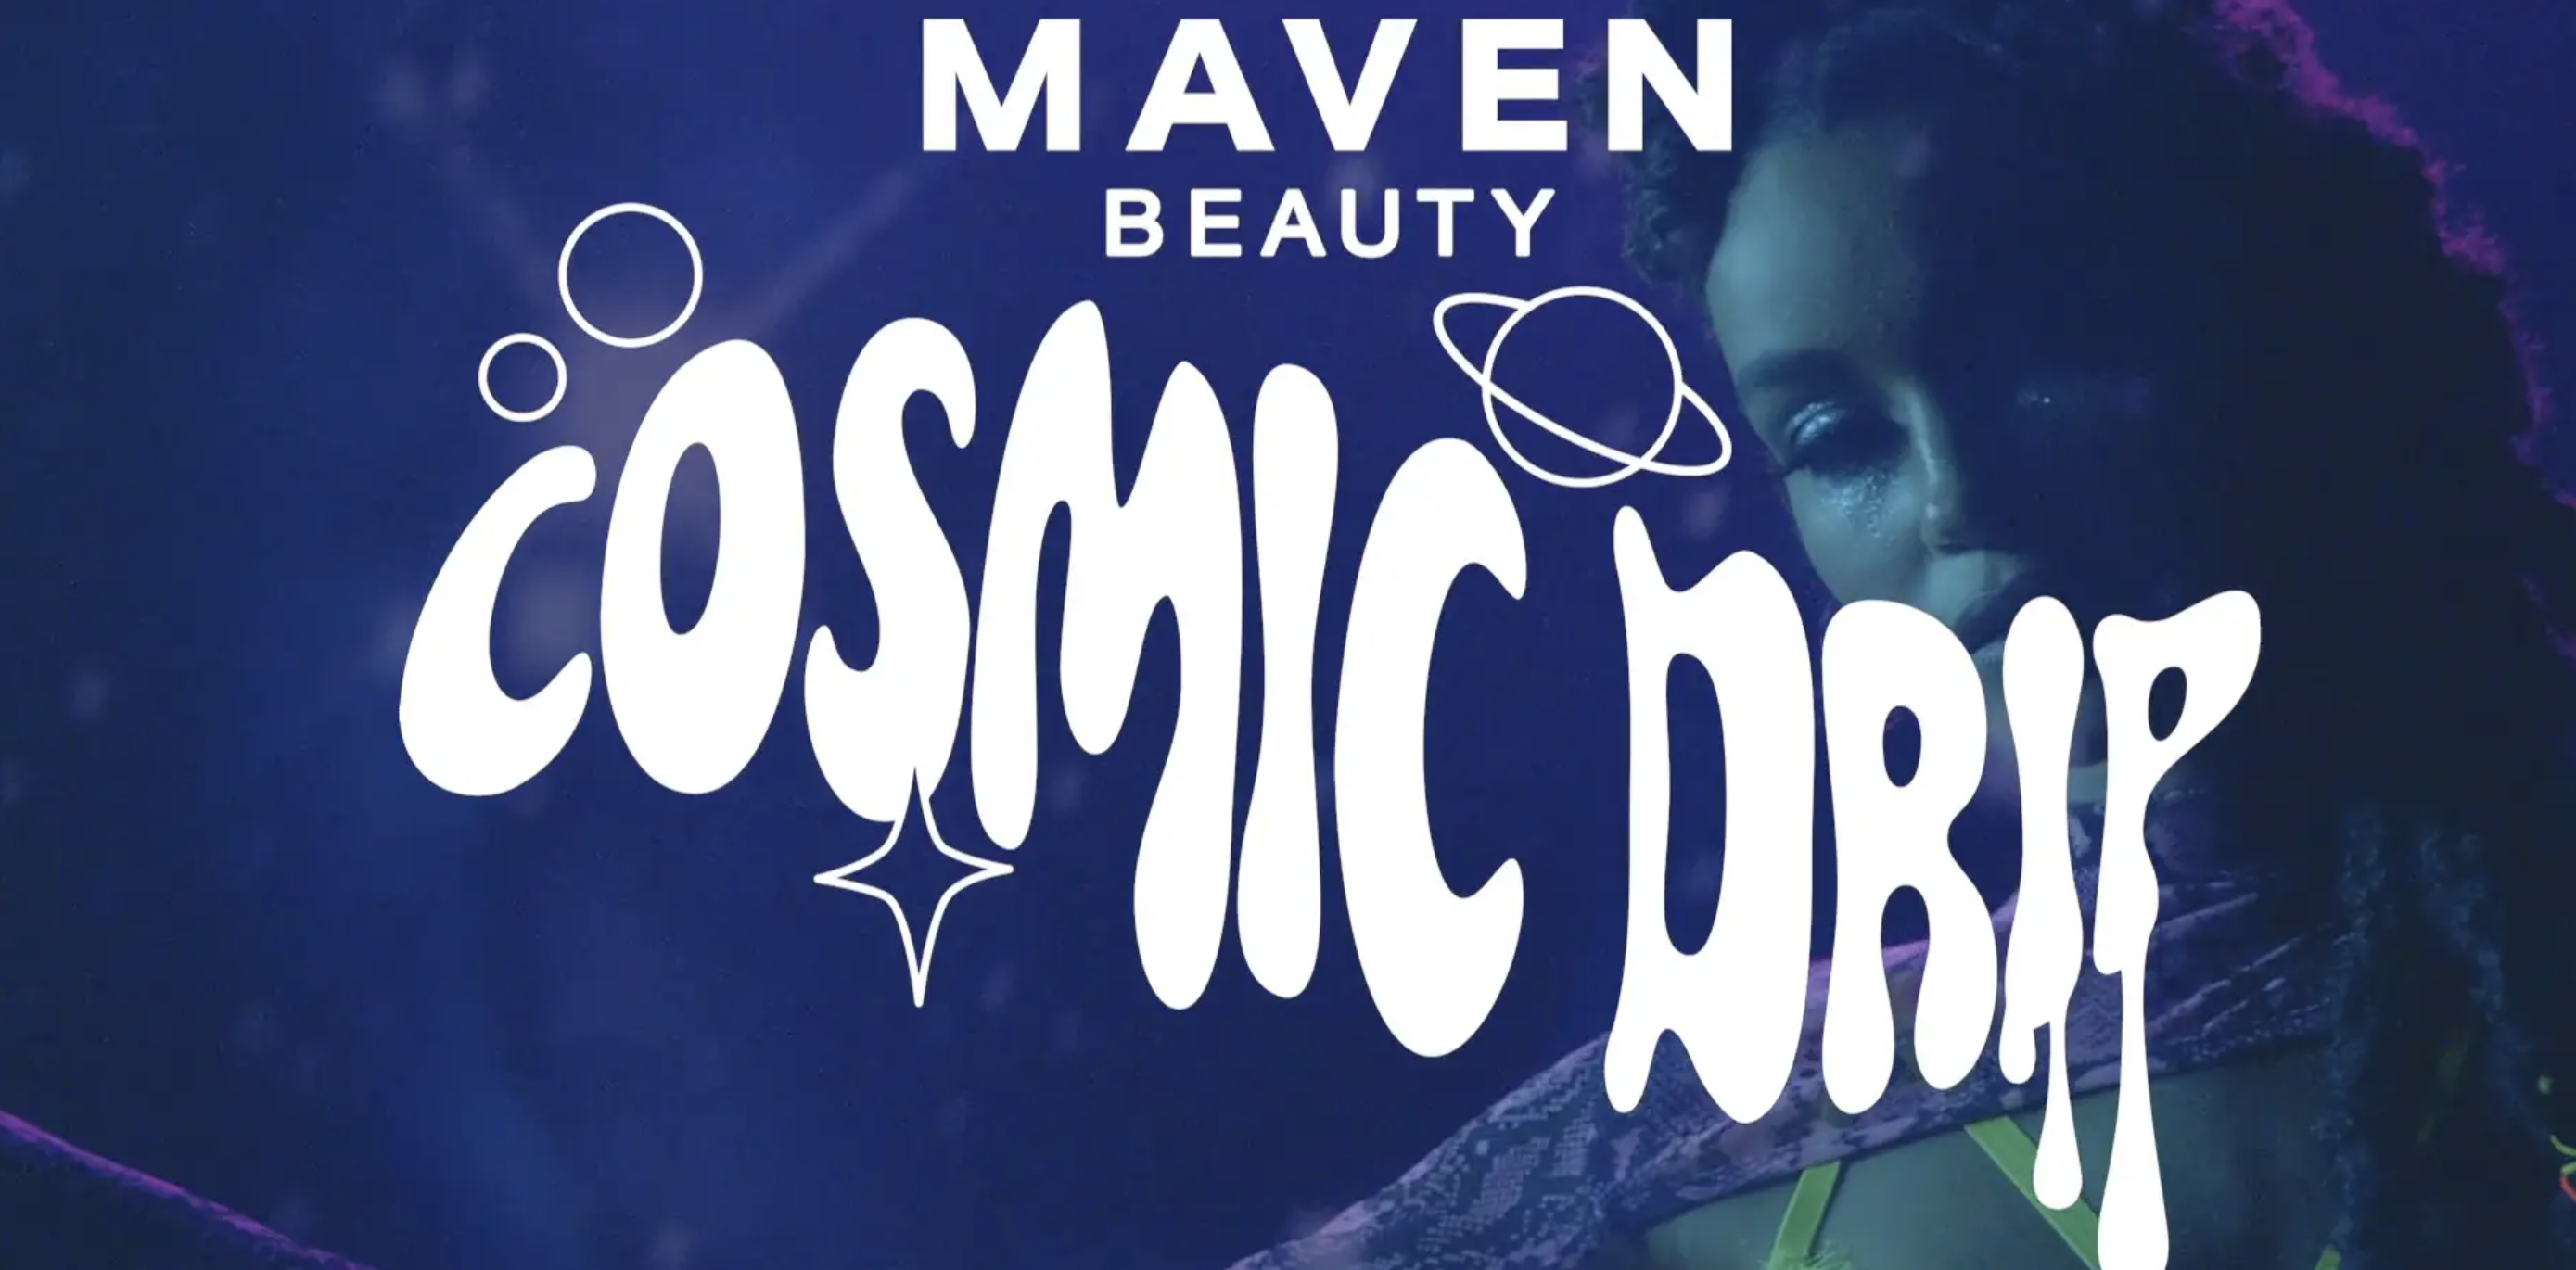 Maven Beauty Drops New 'Euphoria'-Inspired Collection 'Cosmic Drip' – All Under $23